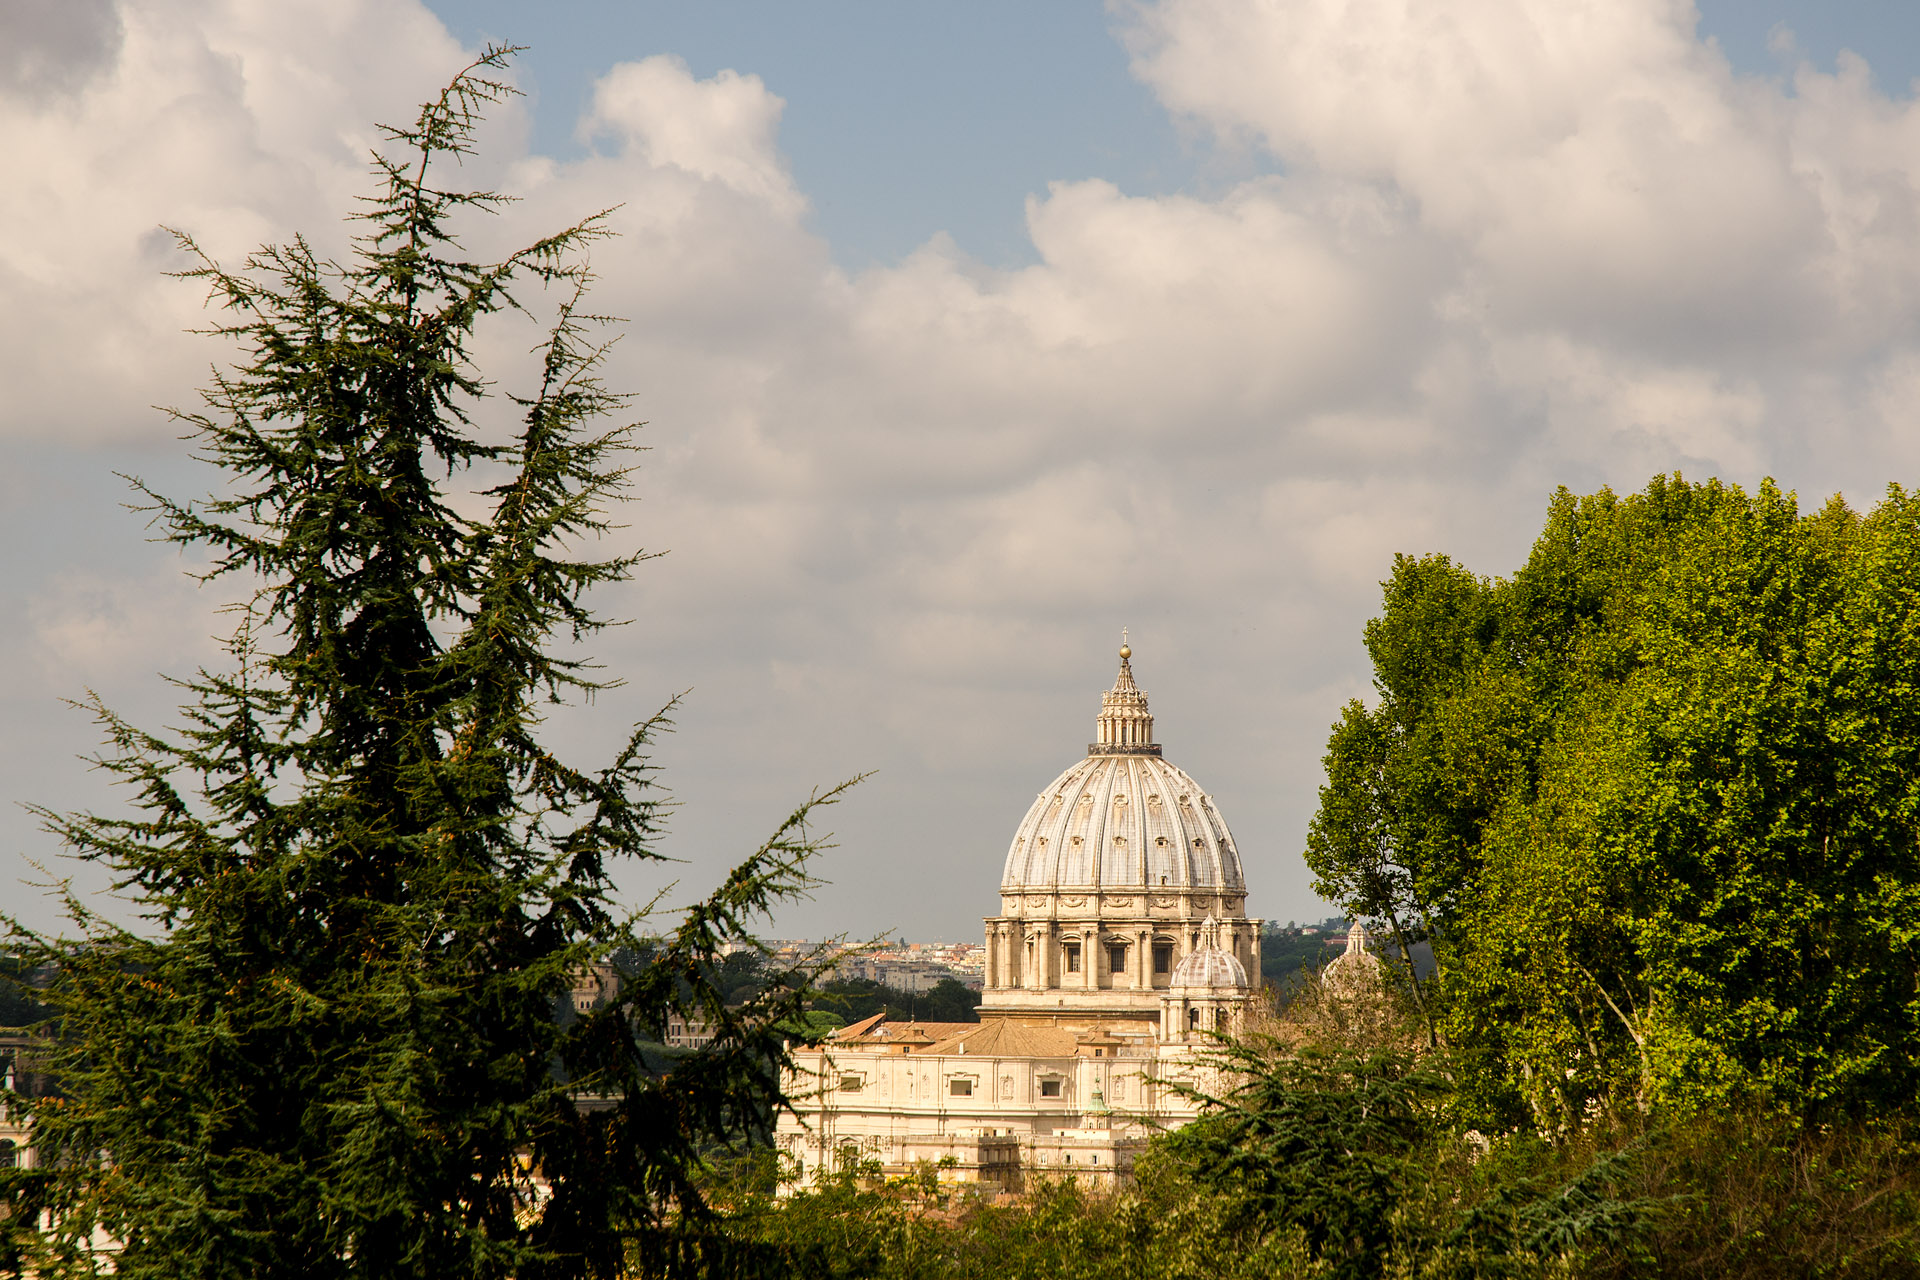 St. Peter's Basilica from Janiculum Hill